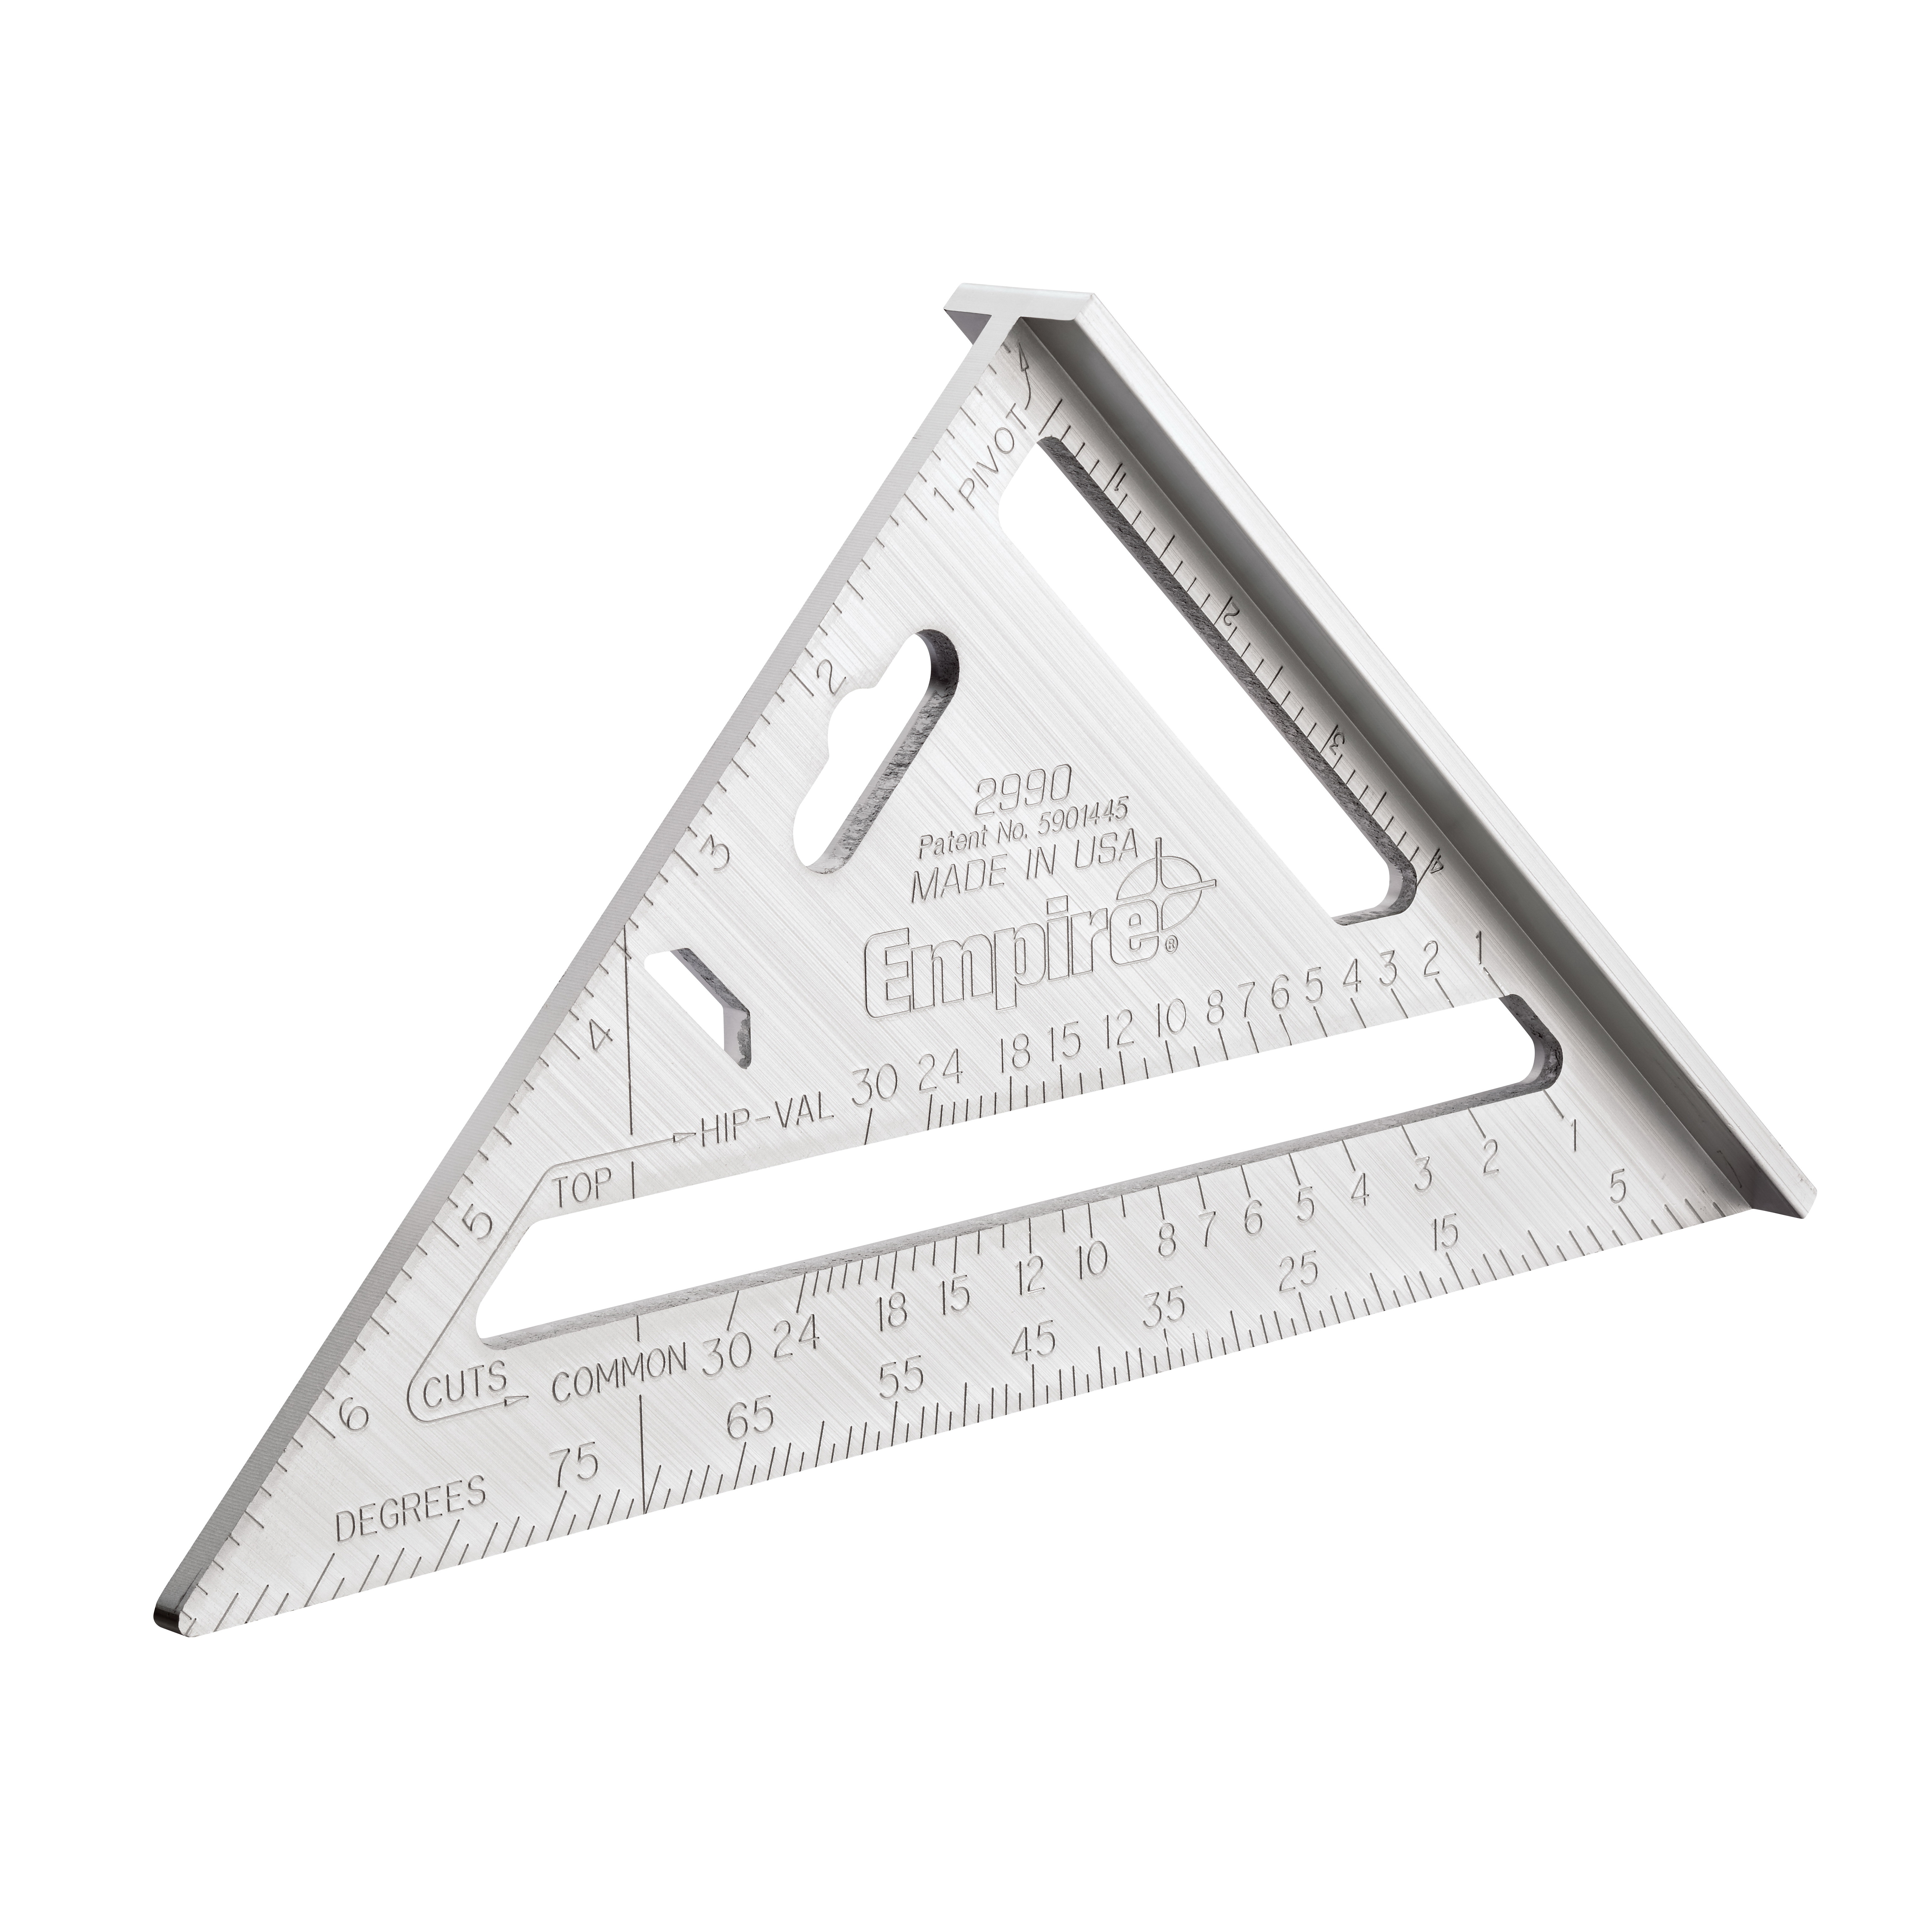 Empire® 27912 Protractor, 0 to 180 deg Measuring, 6 in L, Graduations 1/16 in, Stainless Steel